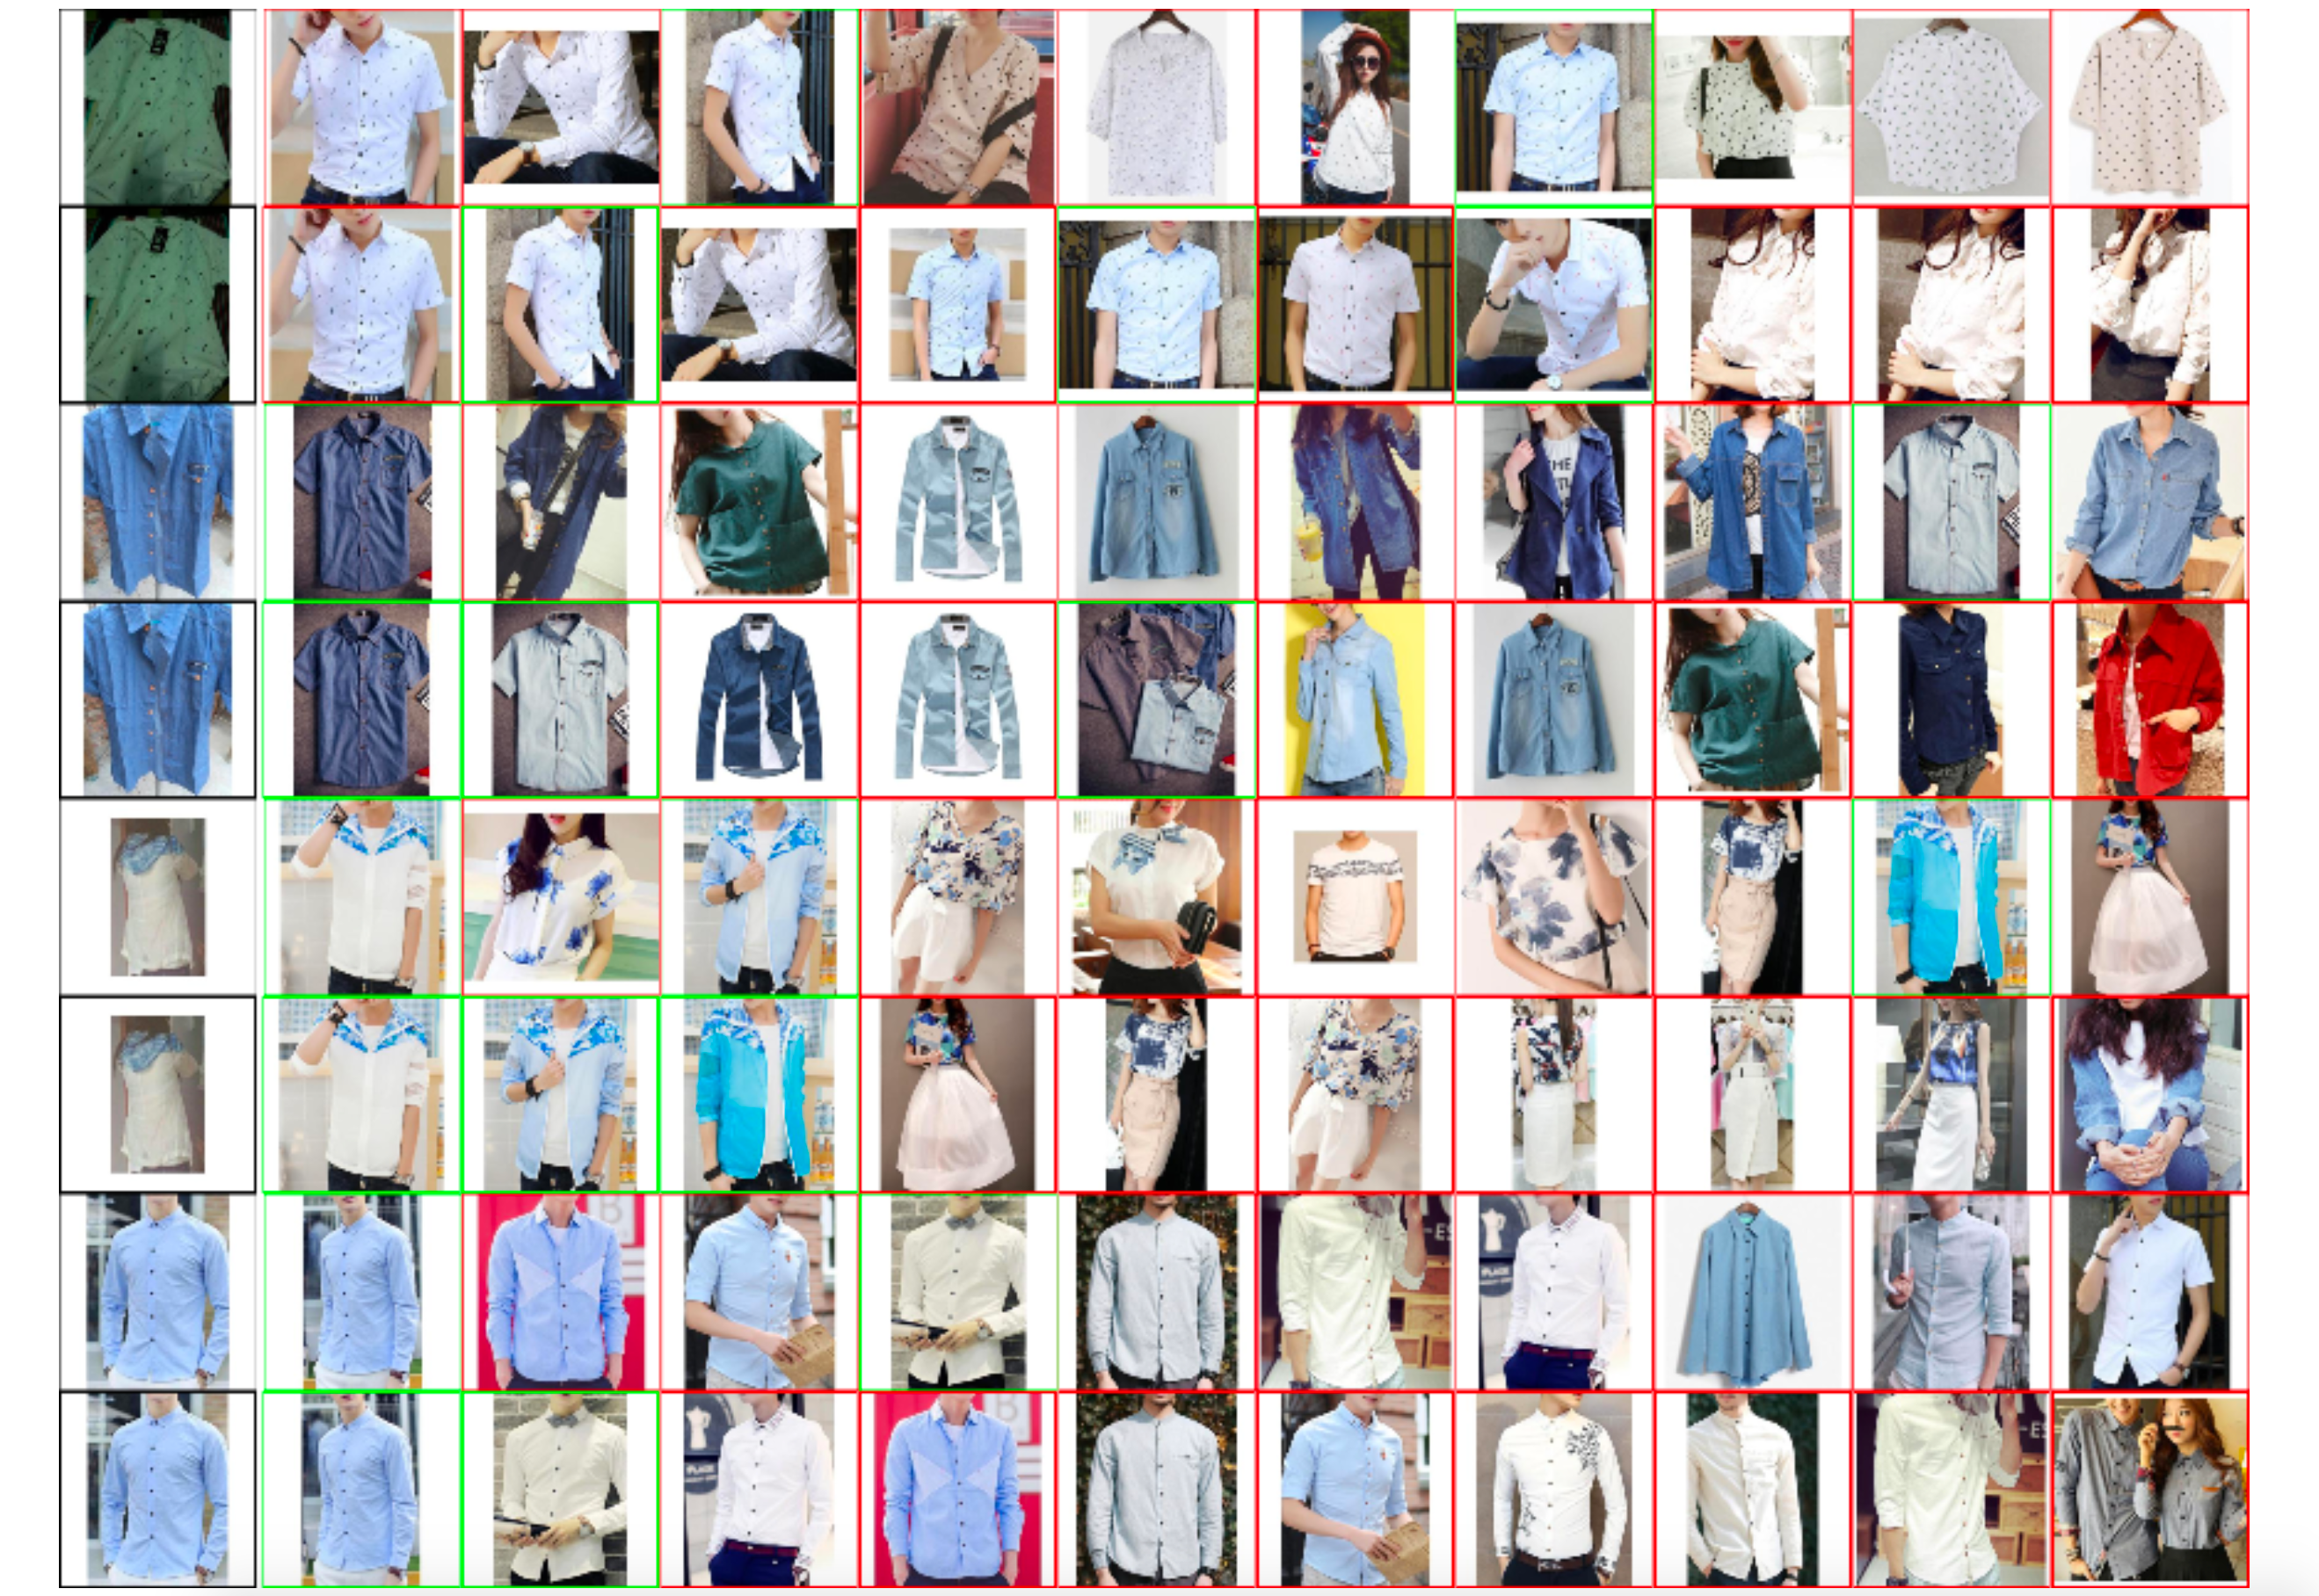 More retrieval results on DeepFashion dataset without and with re-ranking.